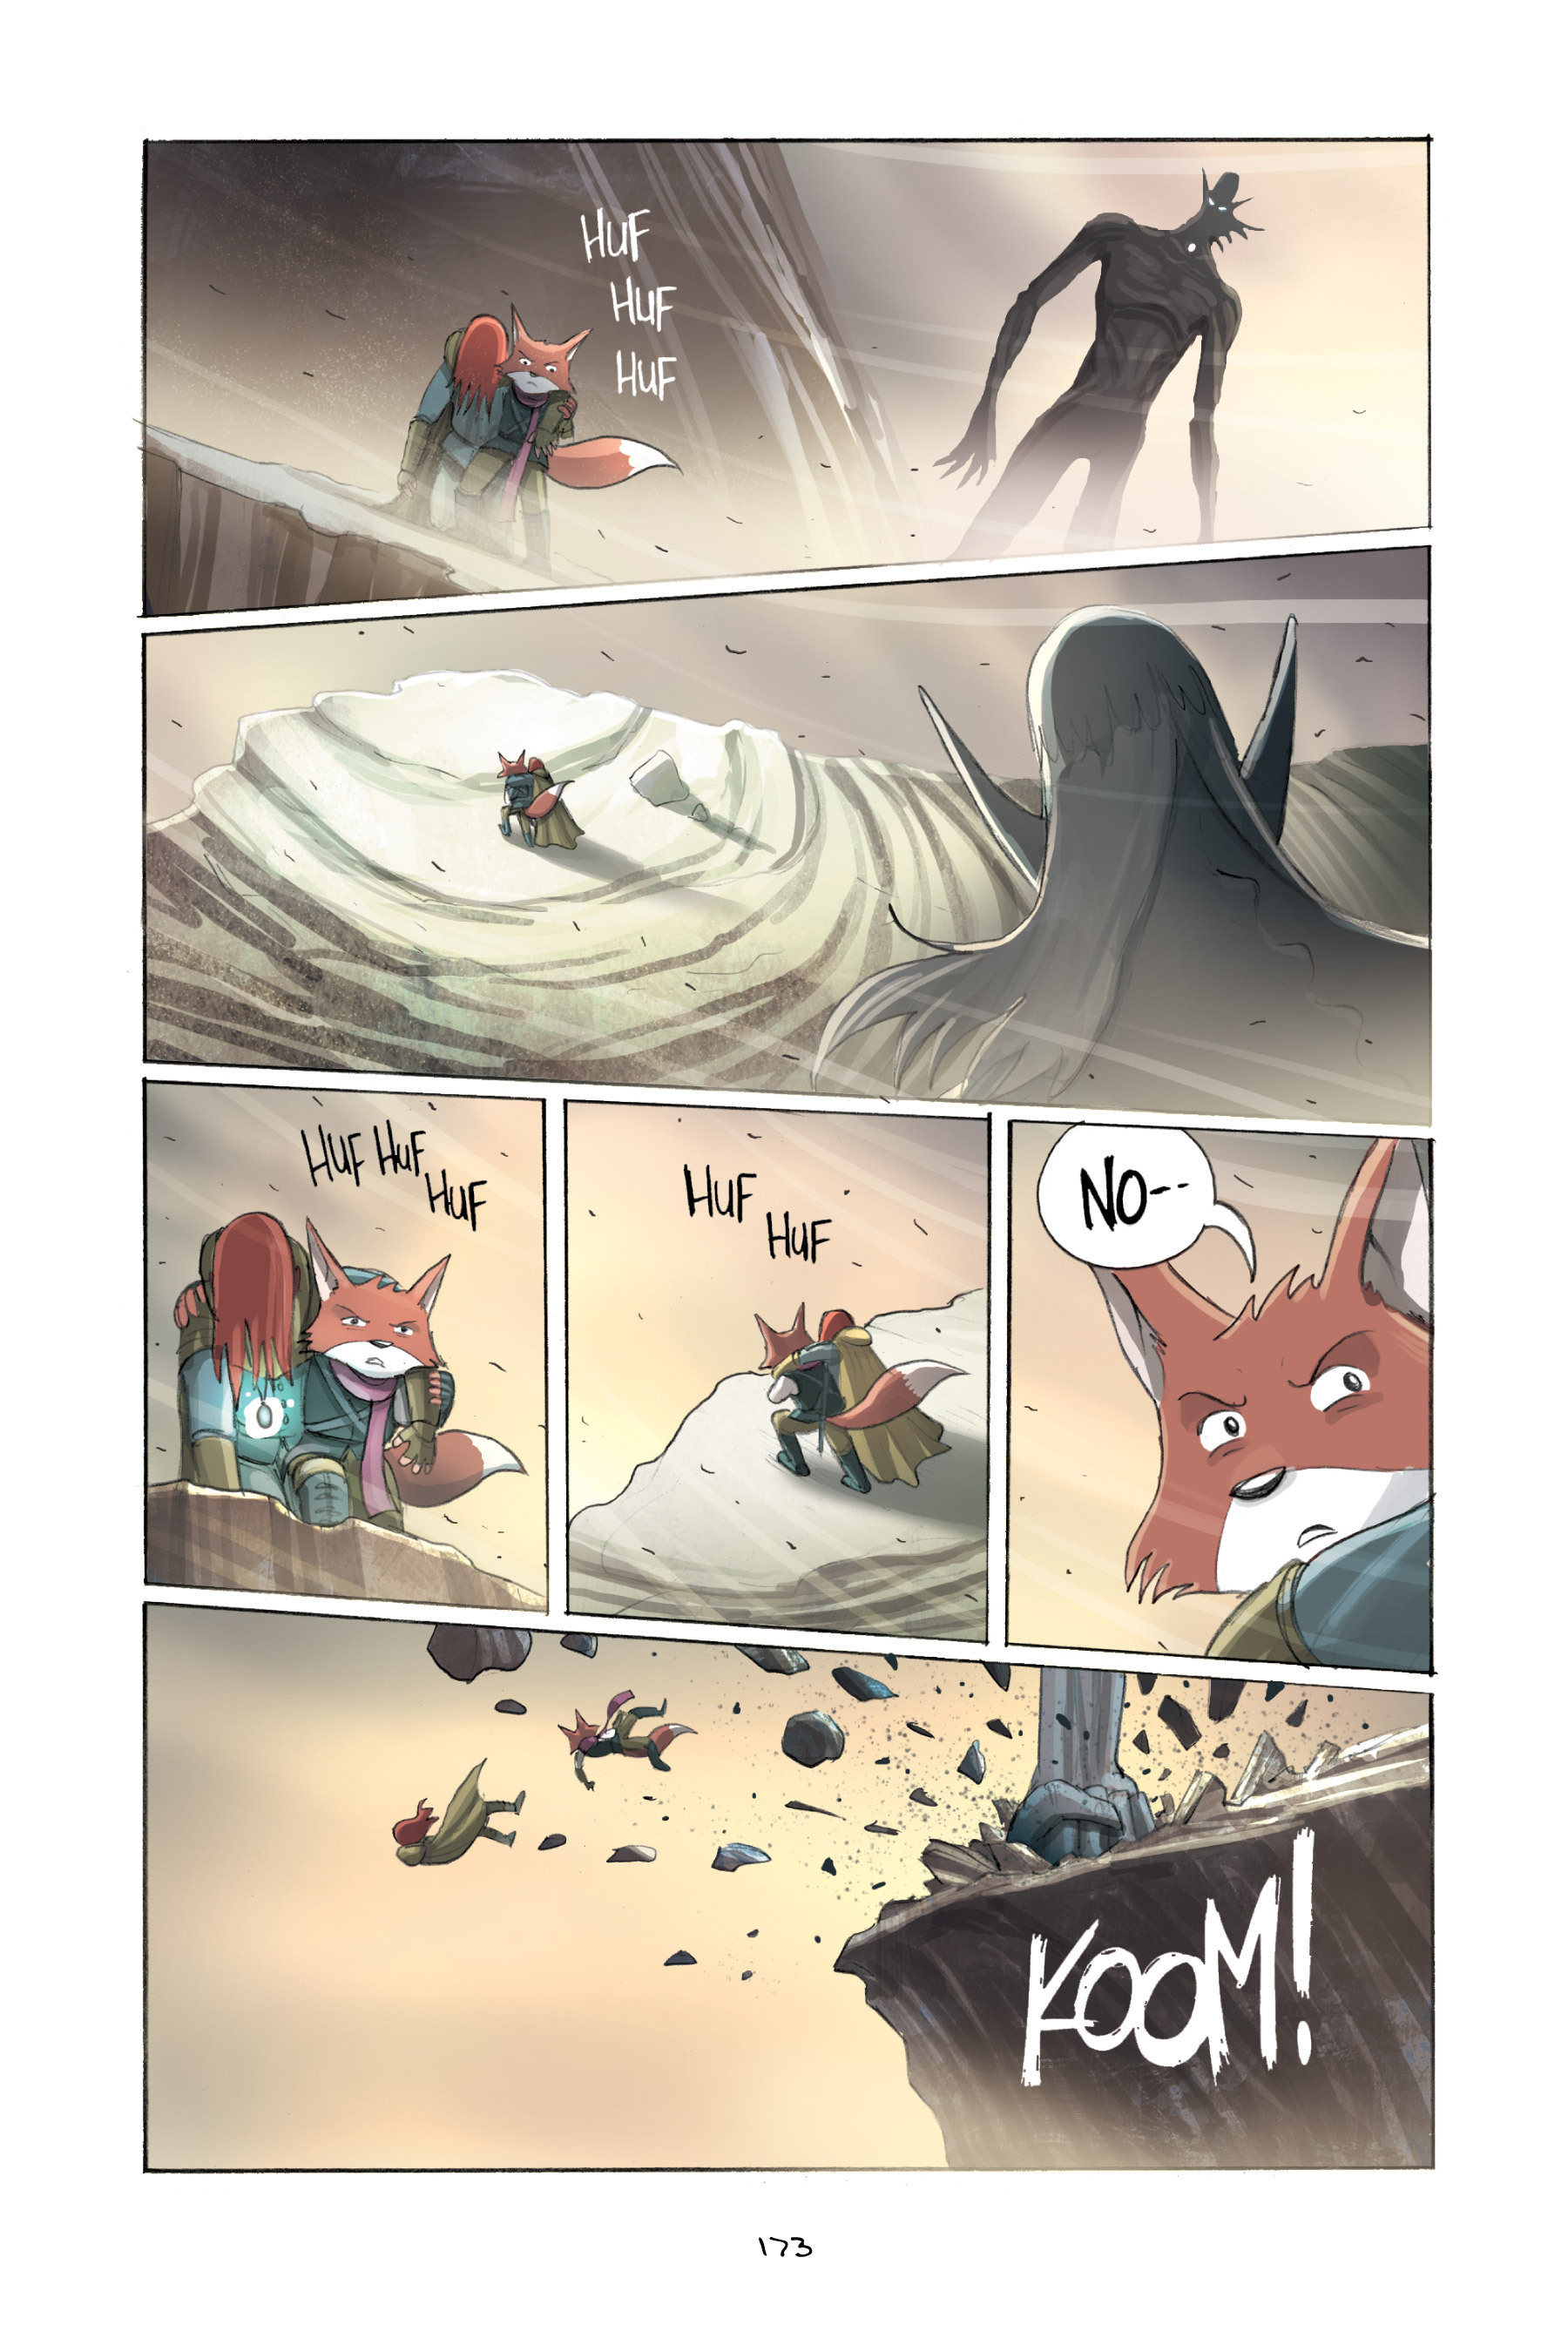 Read online Amulet comic -  Issue #2 - 172